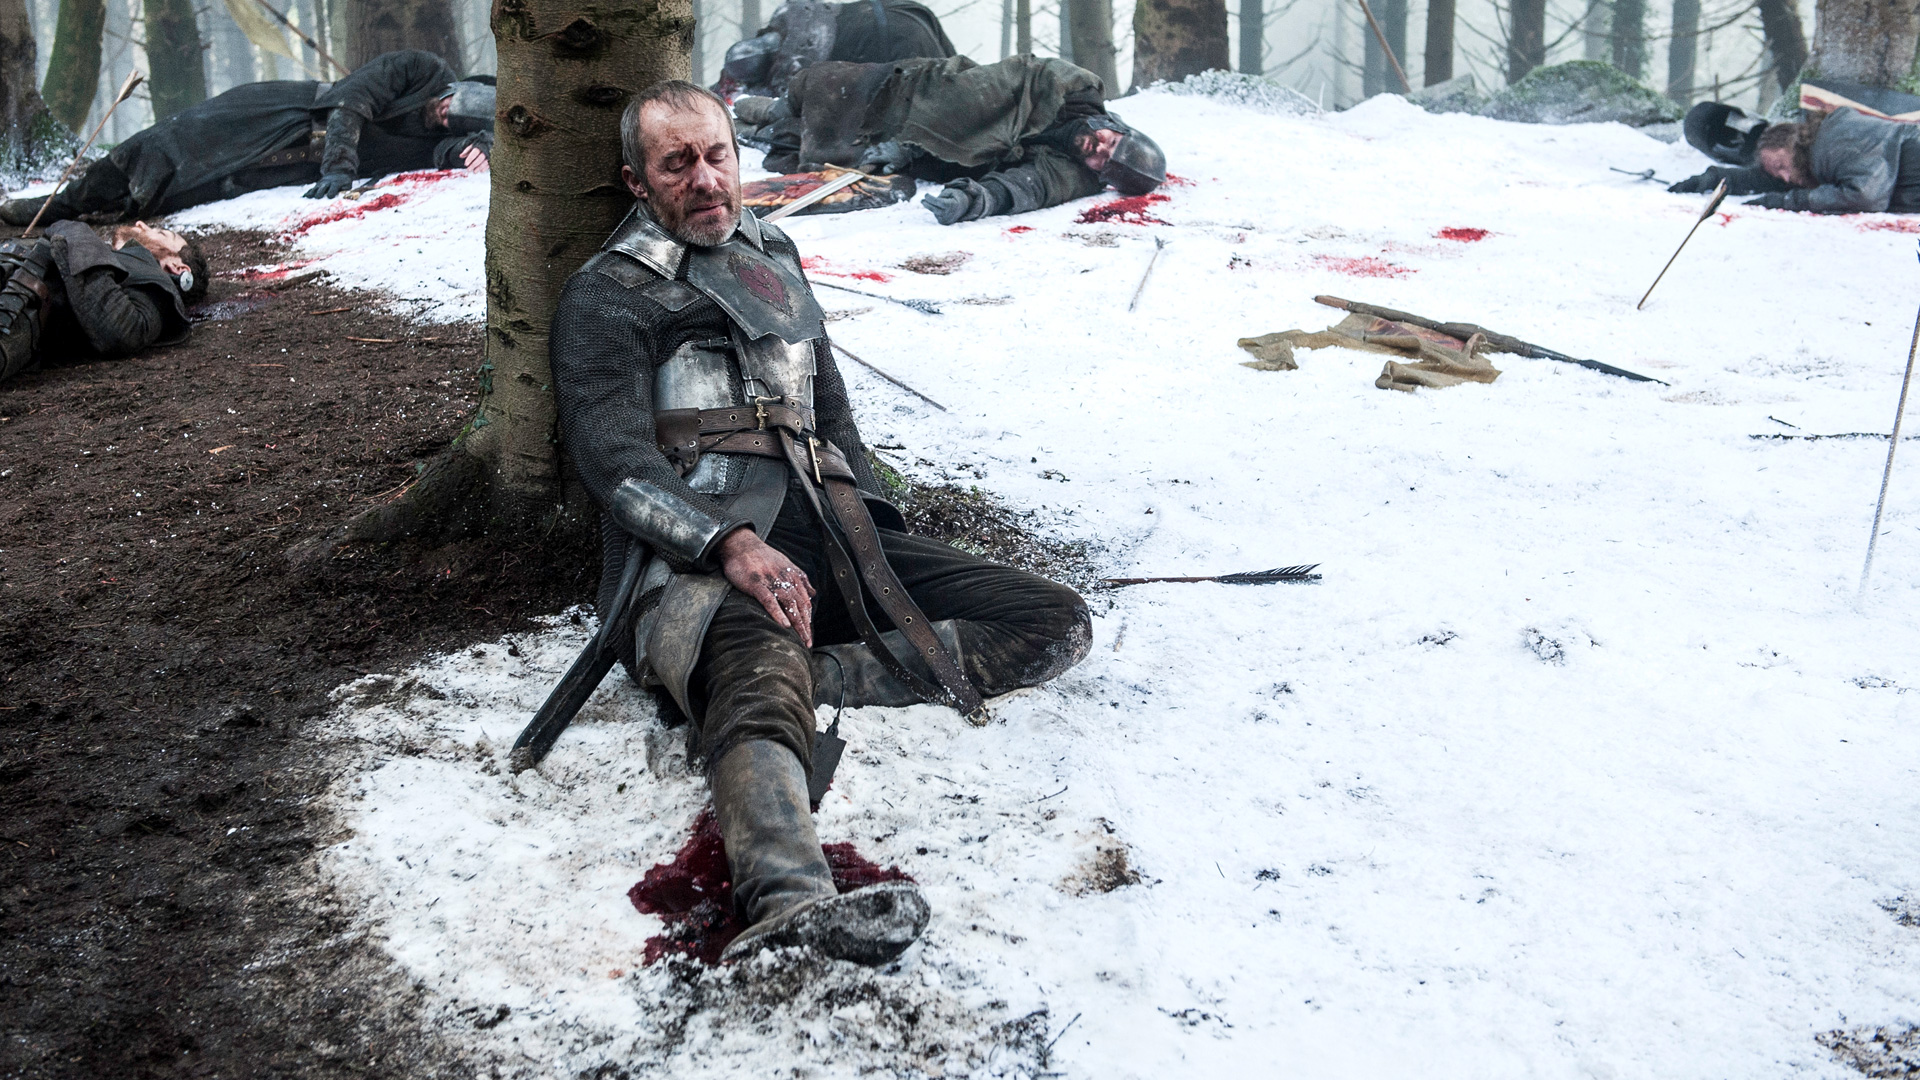 NEGATIV_GAME OF THRONES_MOTHER'S MERCY_Stannis Baratheon